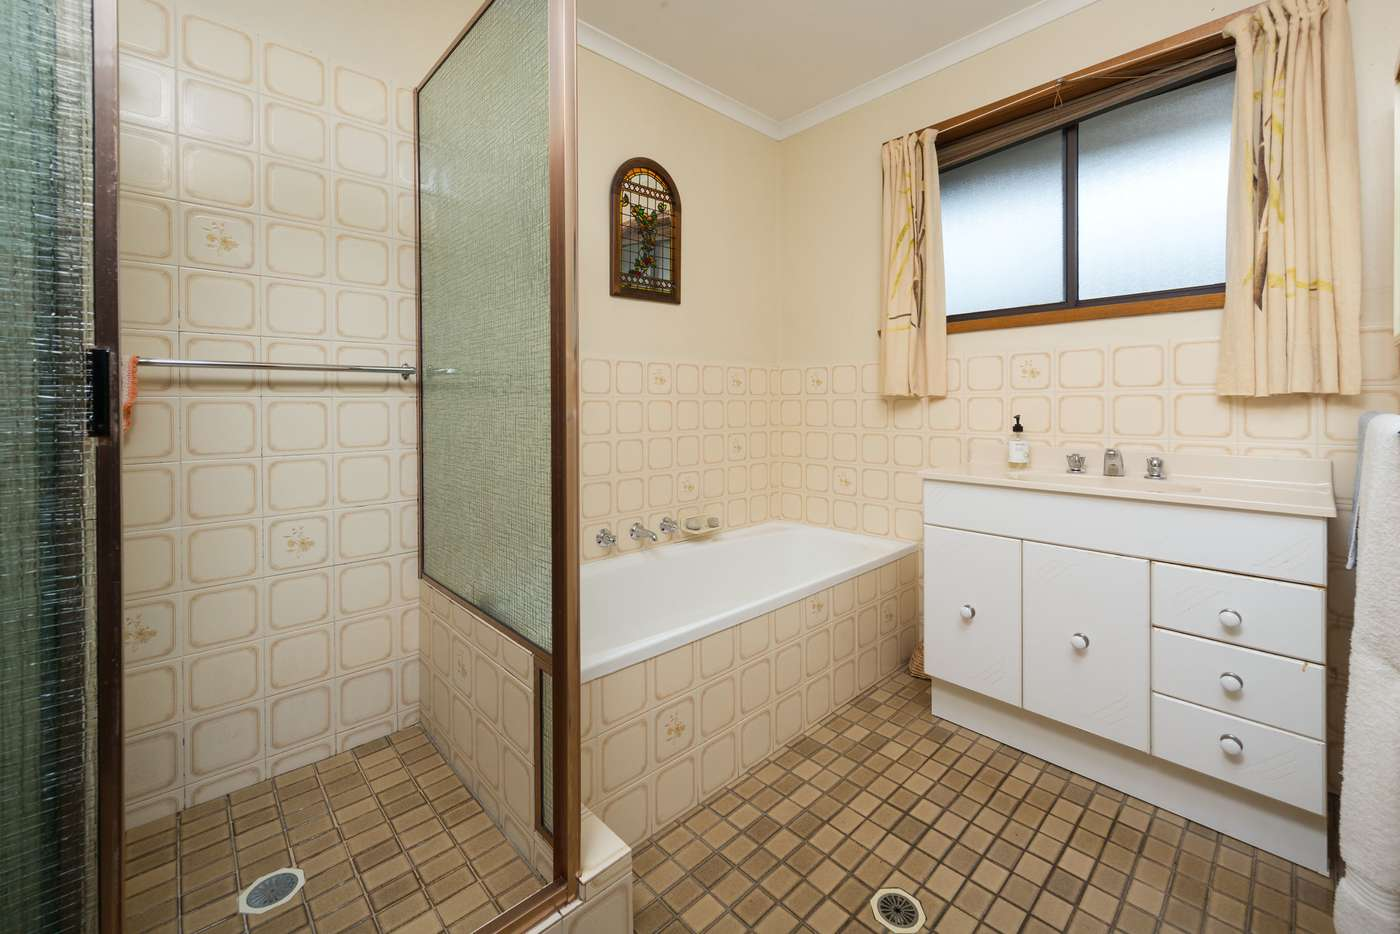 Seventh view of Homely townhouse listing, 1/93 Lawrence Street, Wodonga VIC 3690